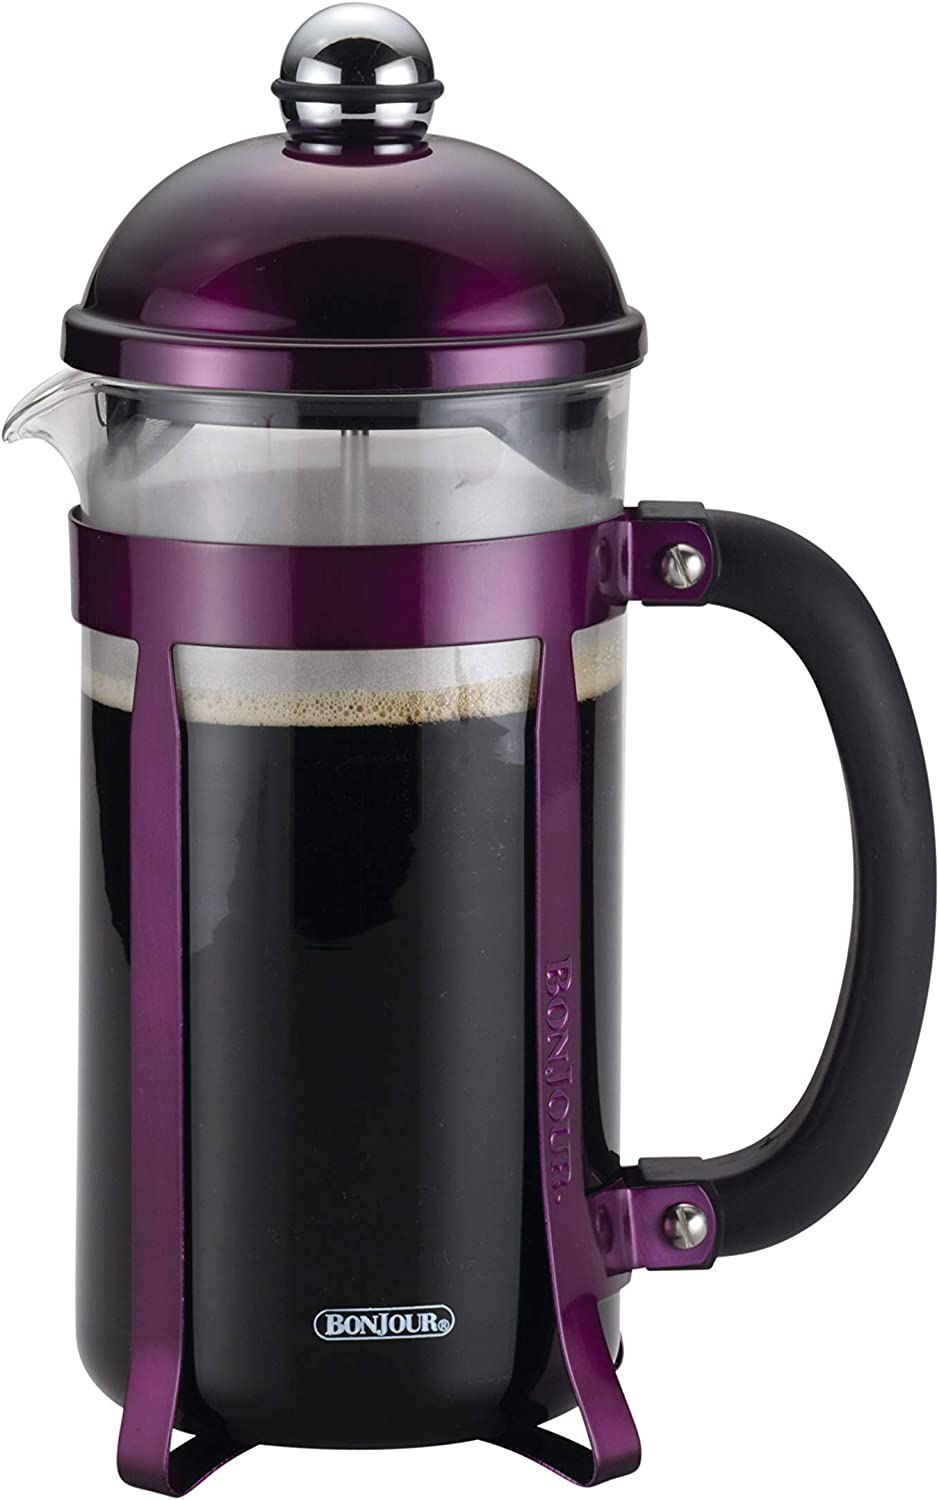 BonJour Maximus French Press Coffee Maker, 8 Cup, Purple